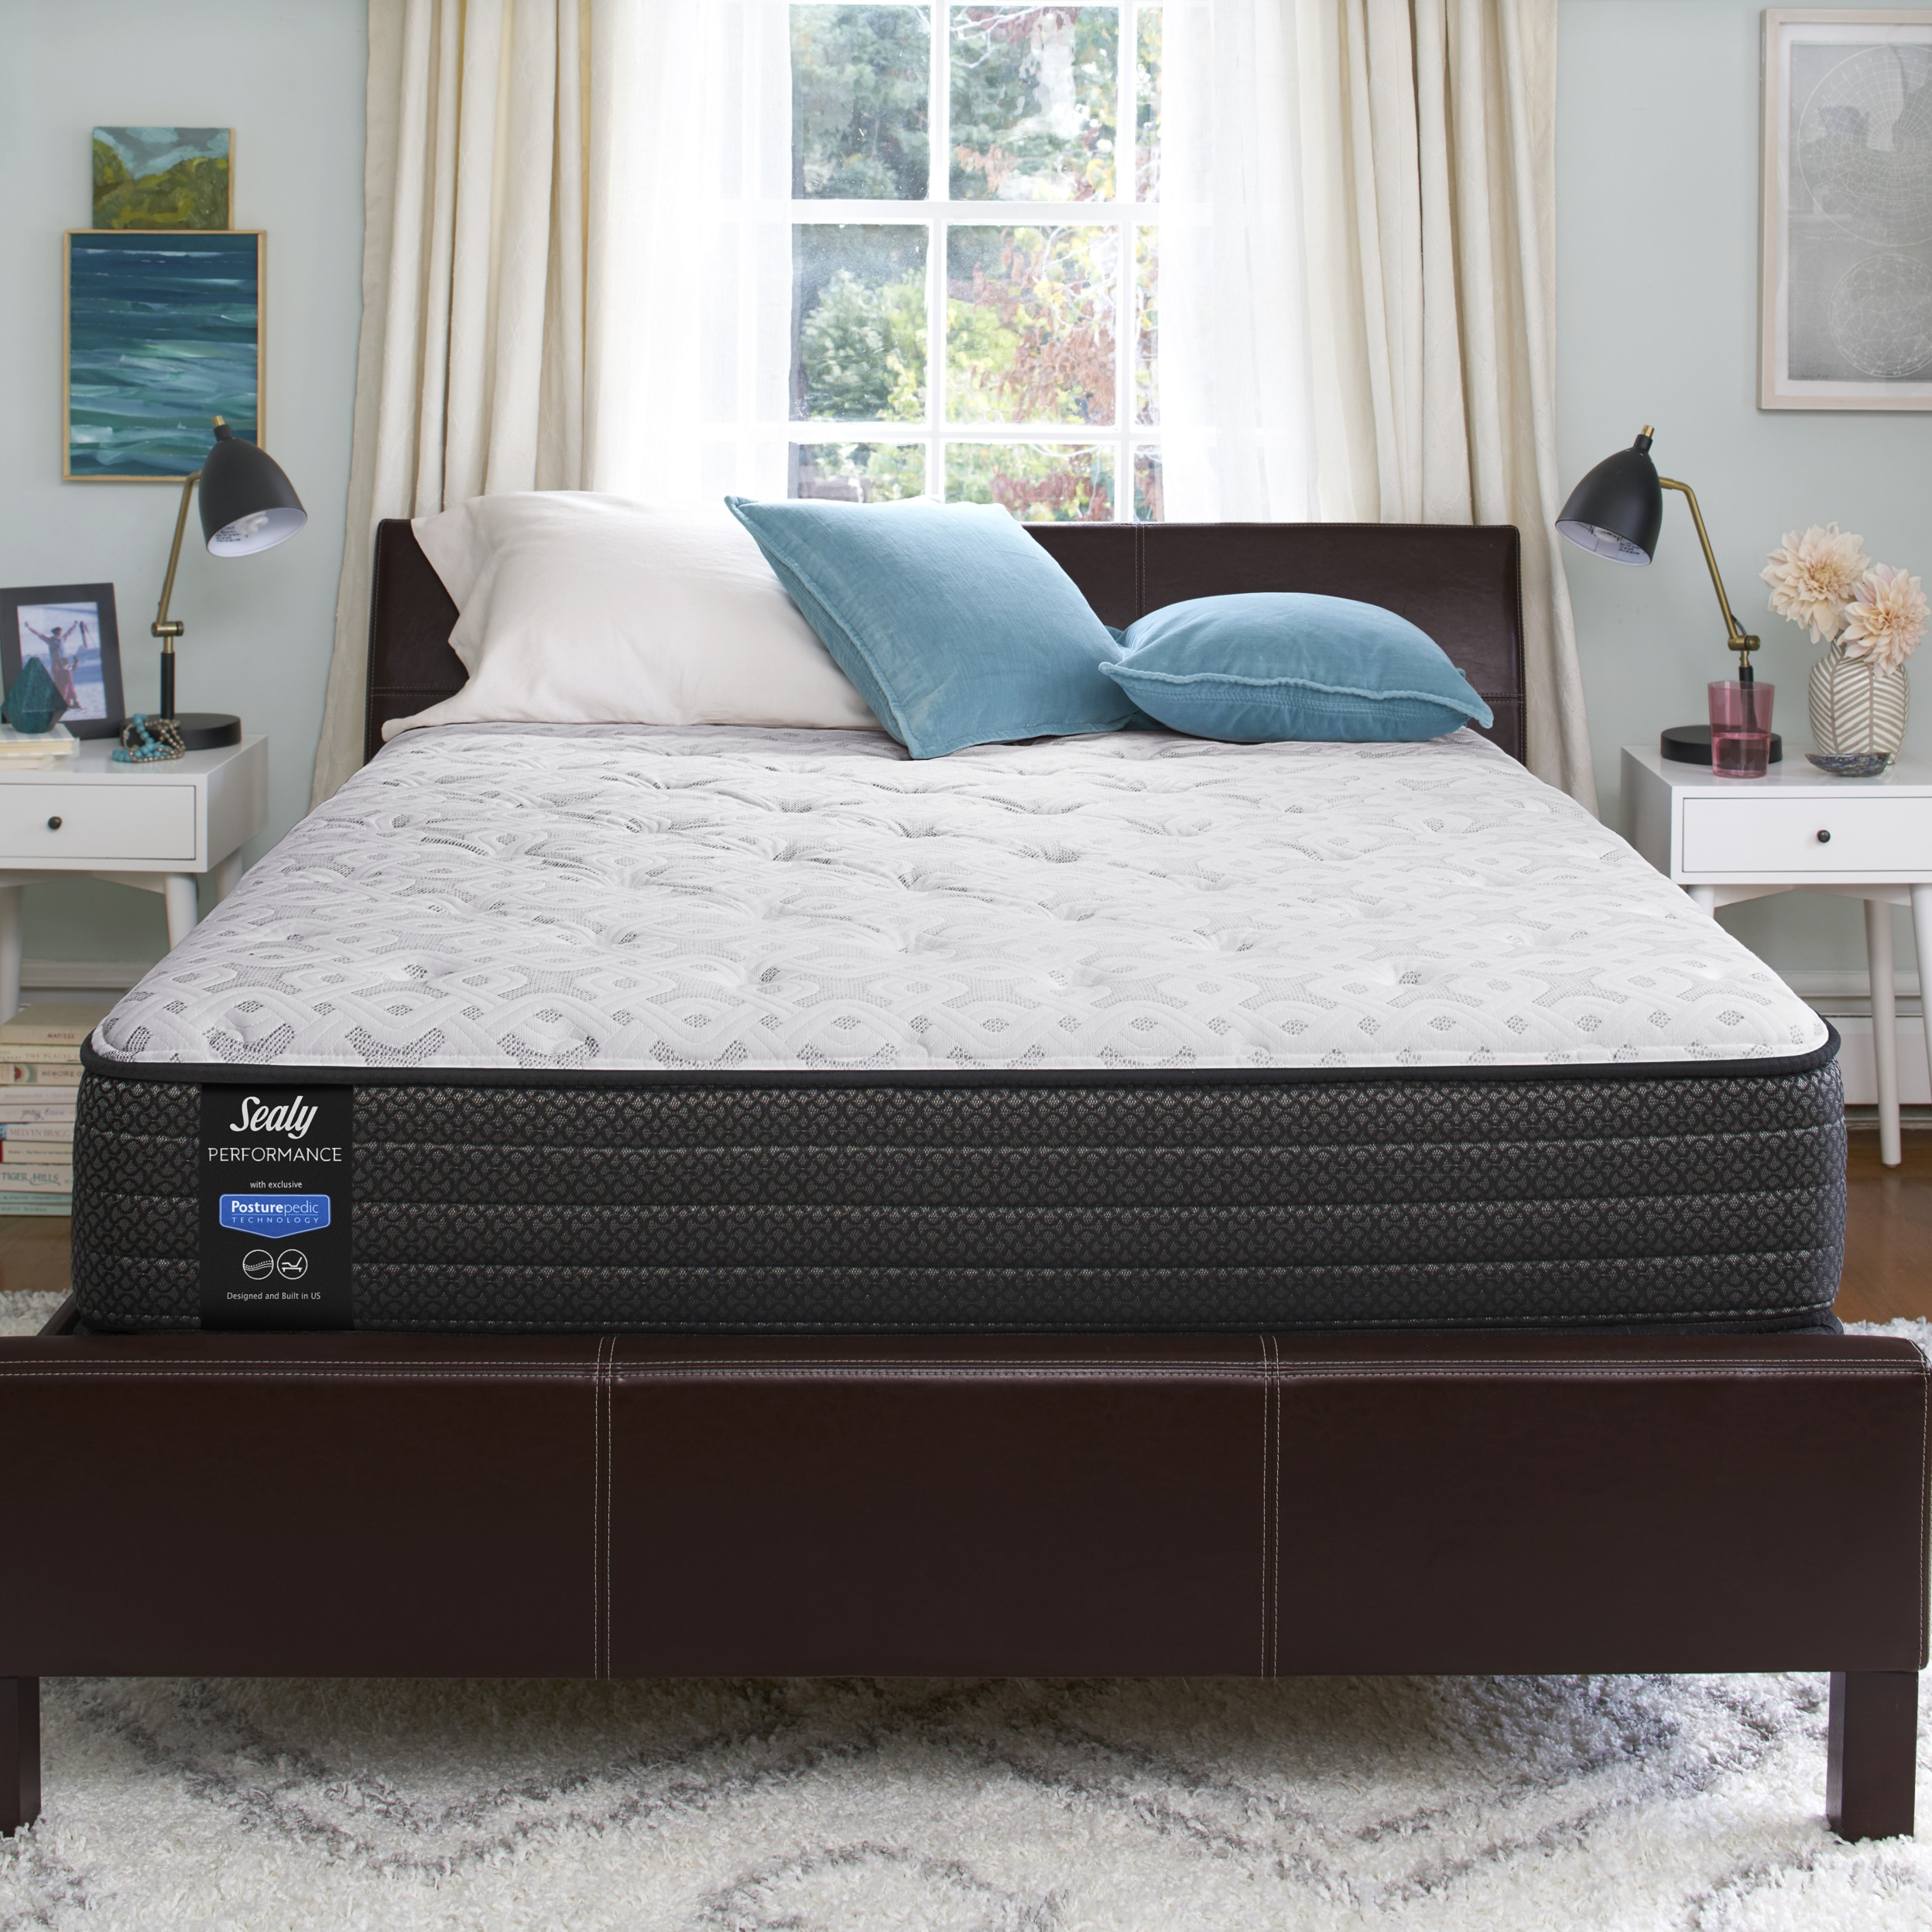 100 Best Mattress Deals Of The Best Mattress 2018 Top 13 Reviews U0026 Buyer U0027s Guide